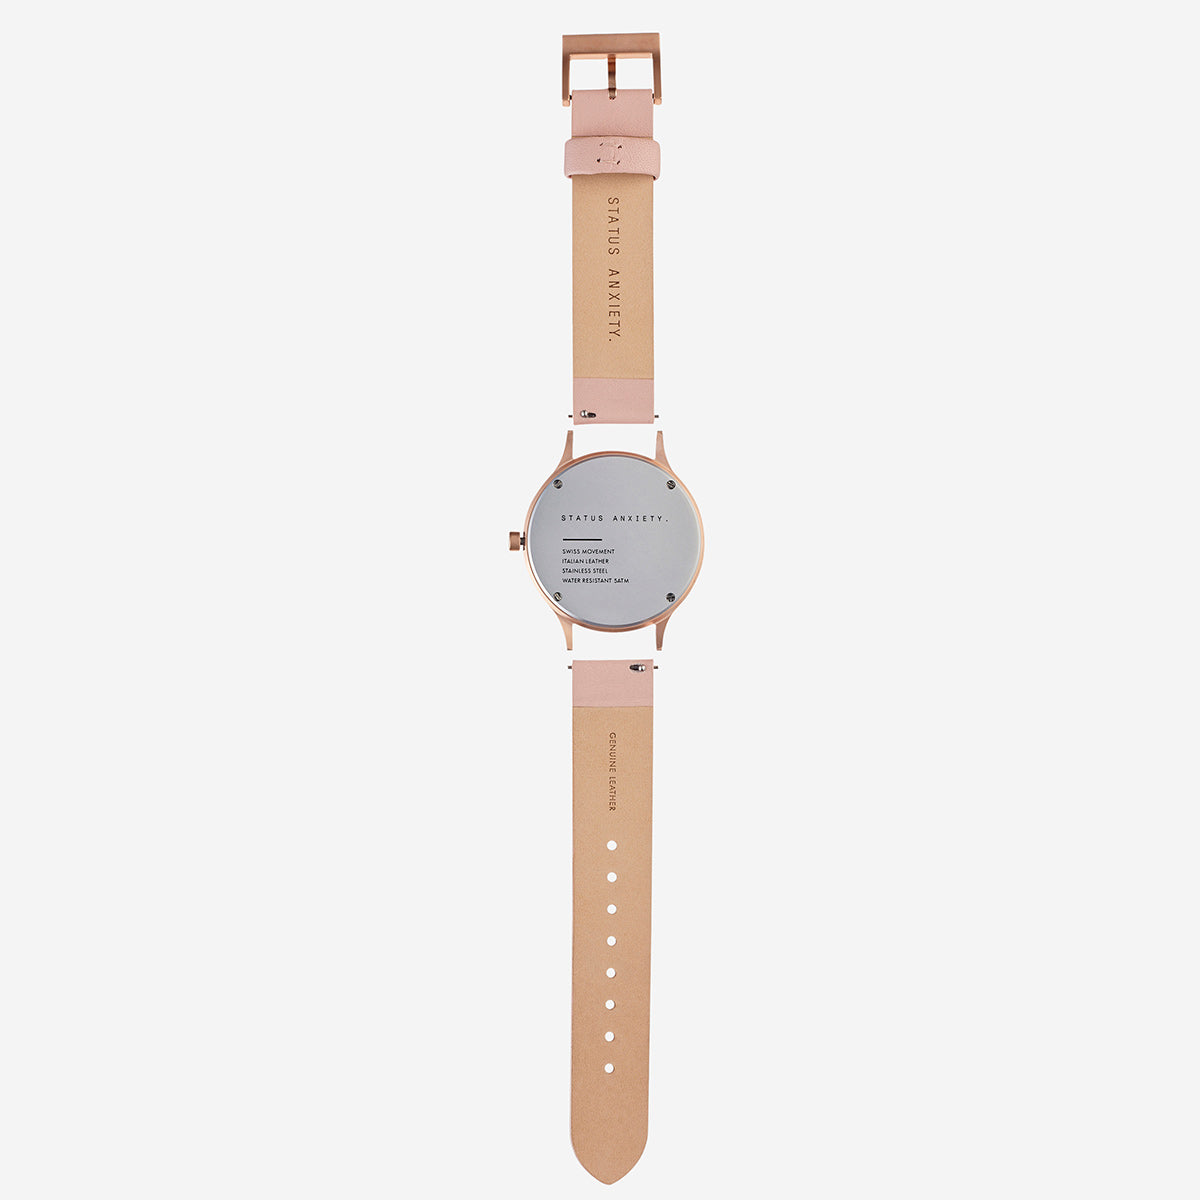 Status Anxiety Inertia Leather Unisex Watch - Copper/White Face/Blush Strap